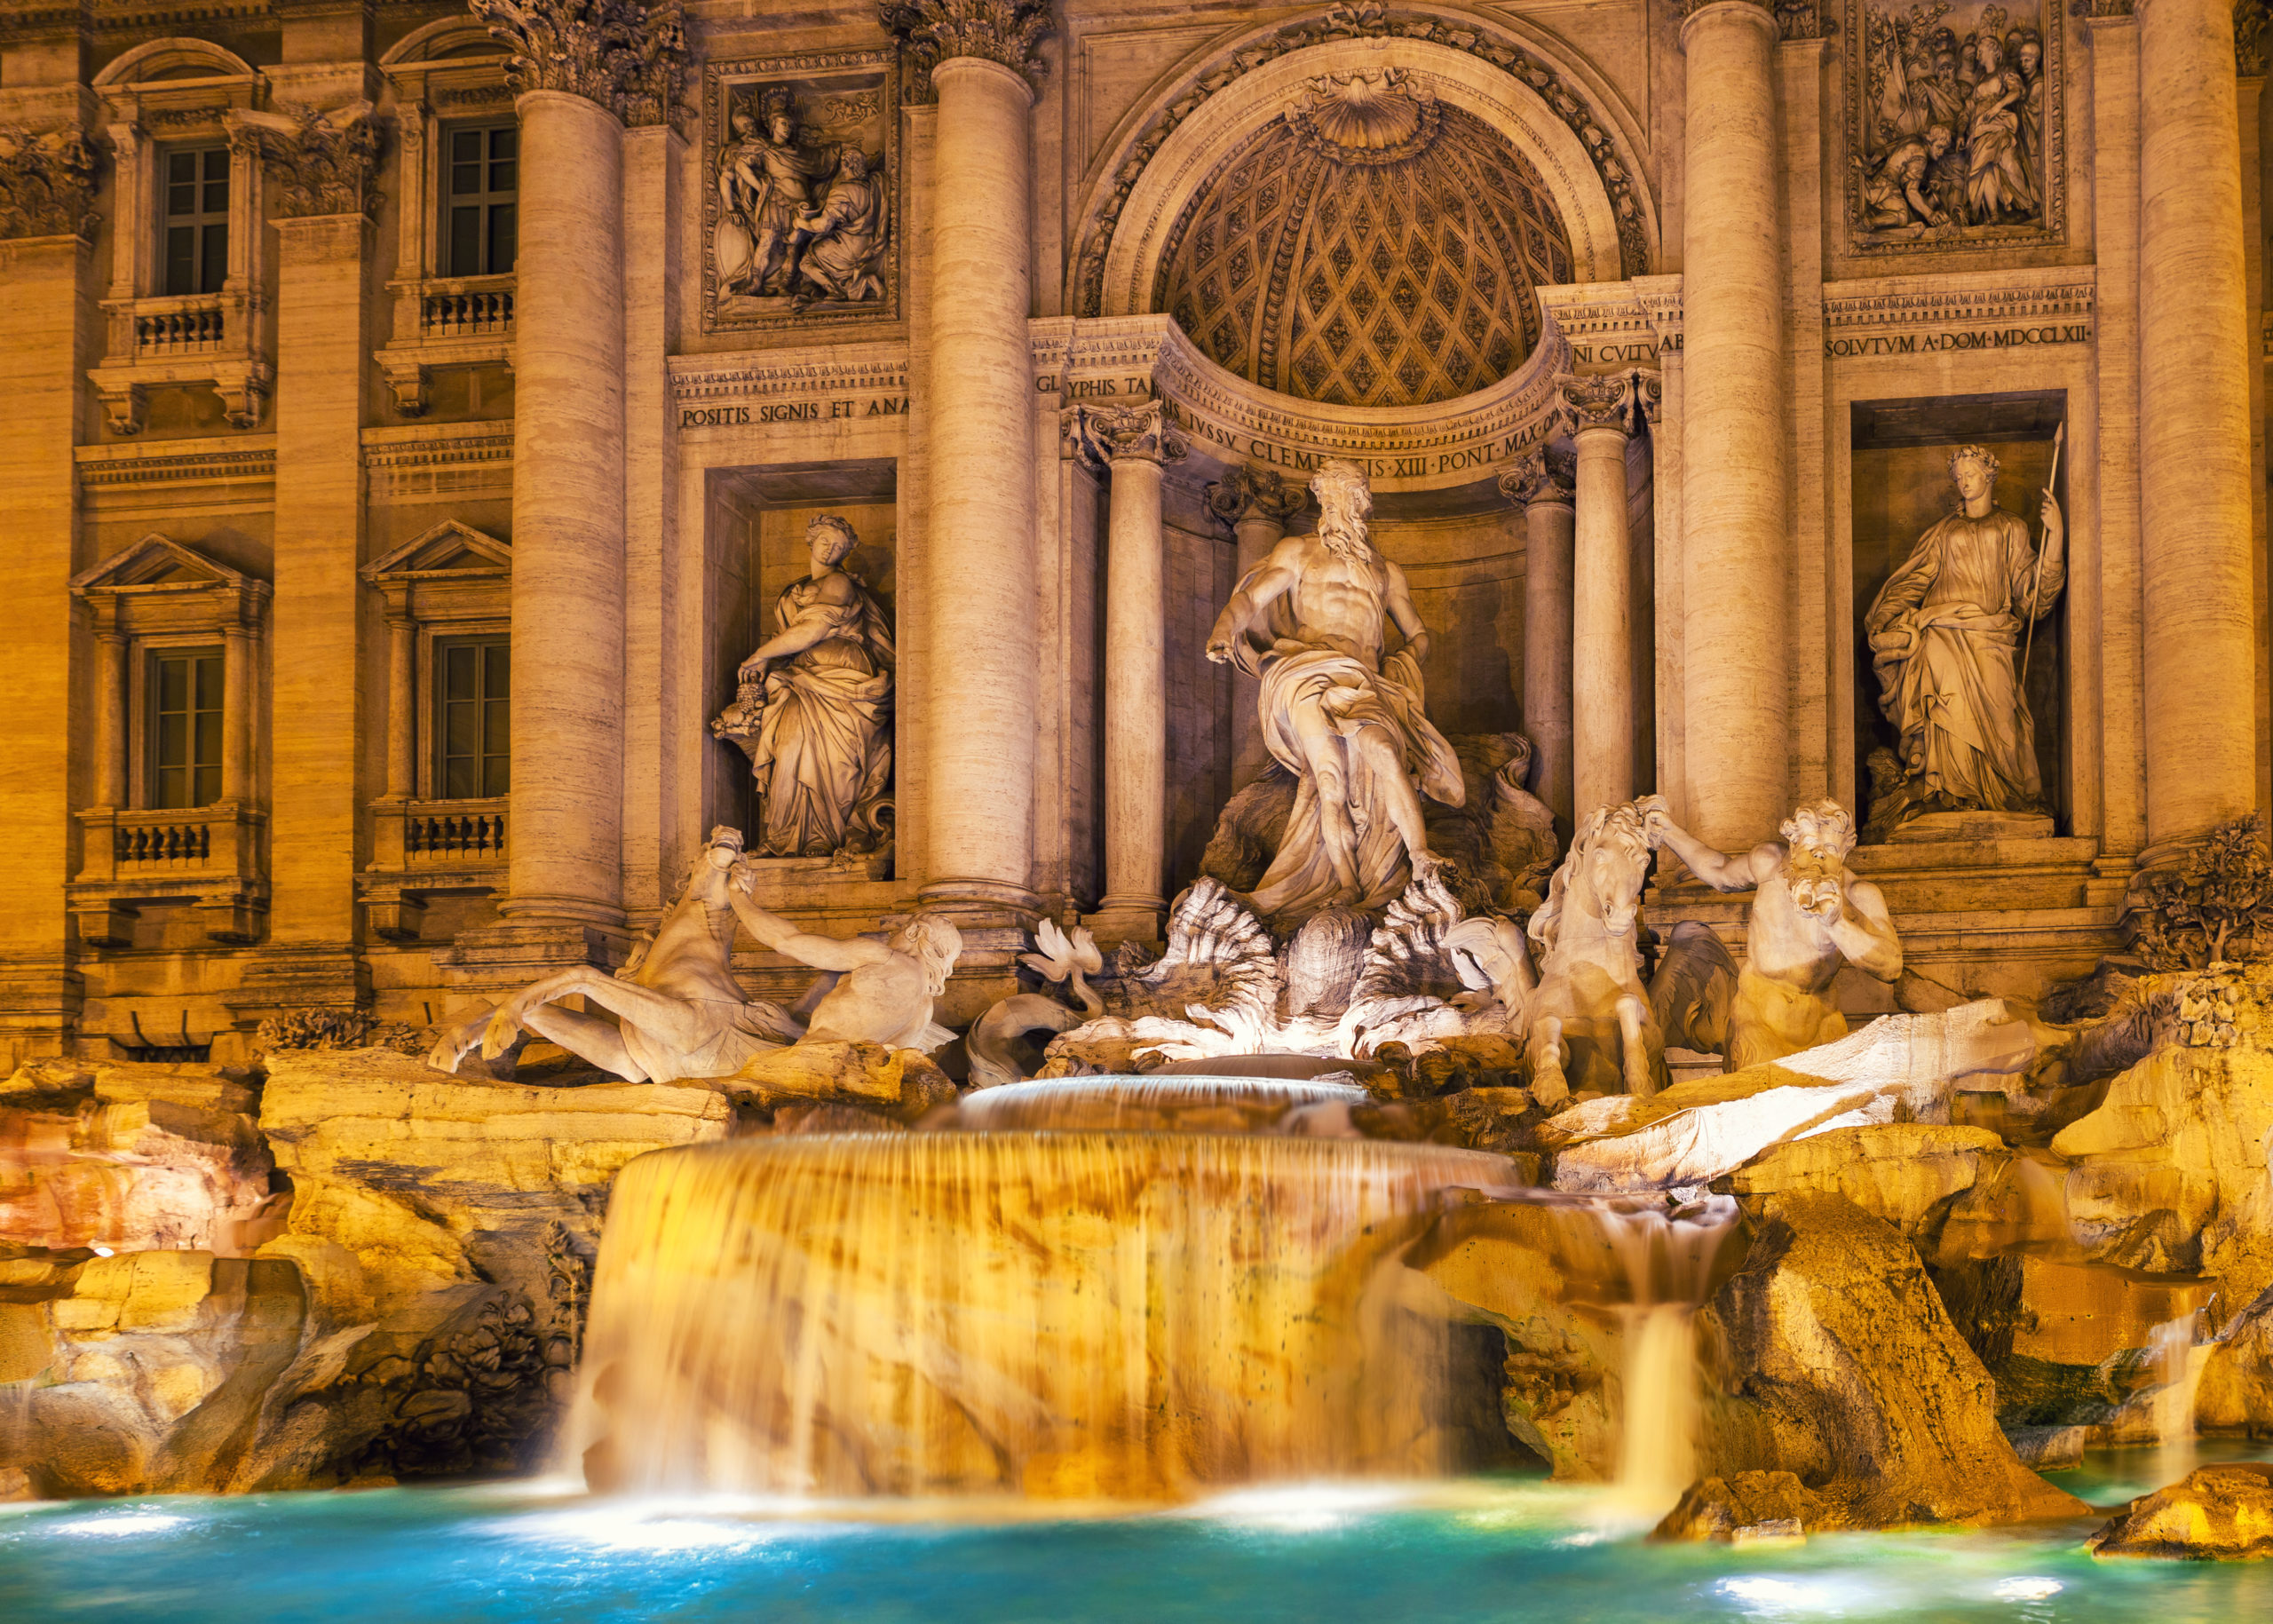 Trevi fountain at night Rome, Italy. Baroque architecture and sculpture.